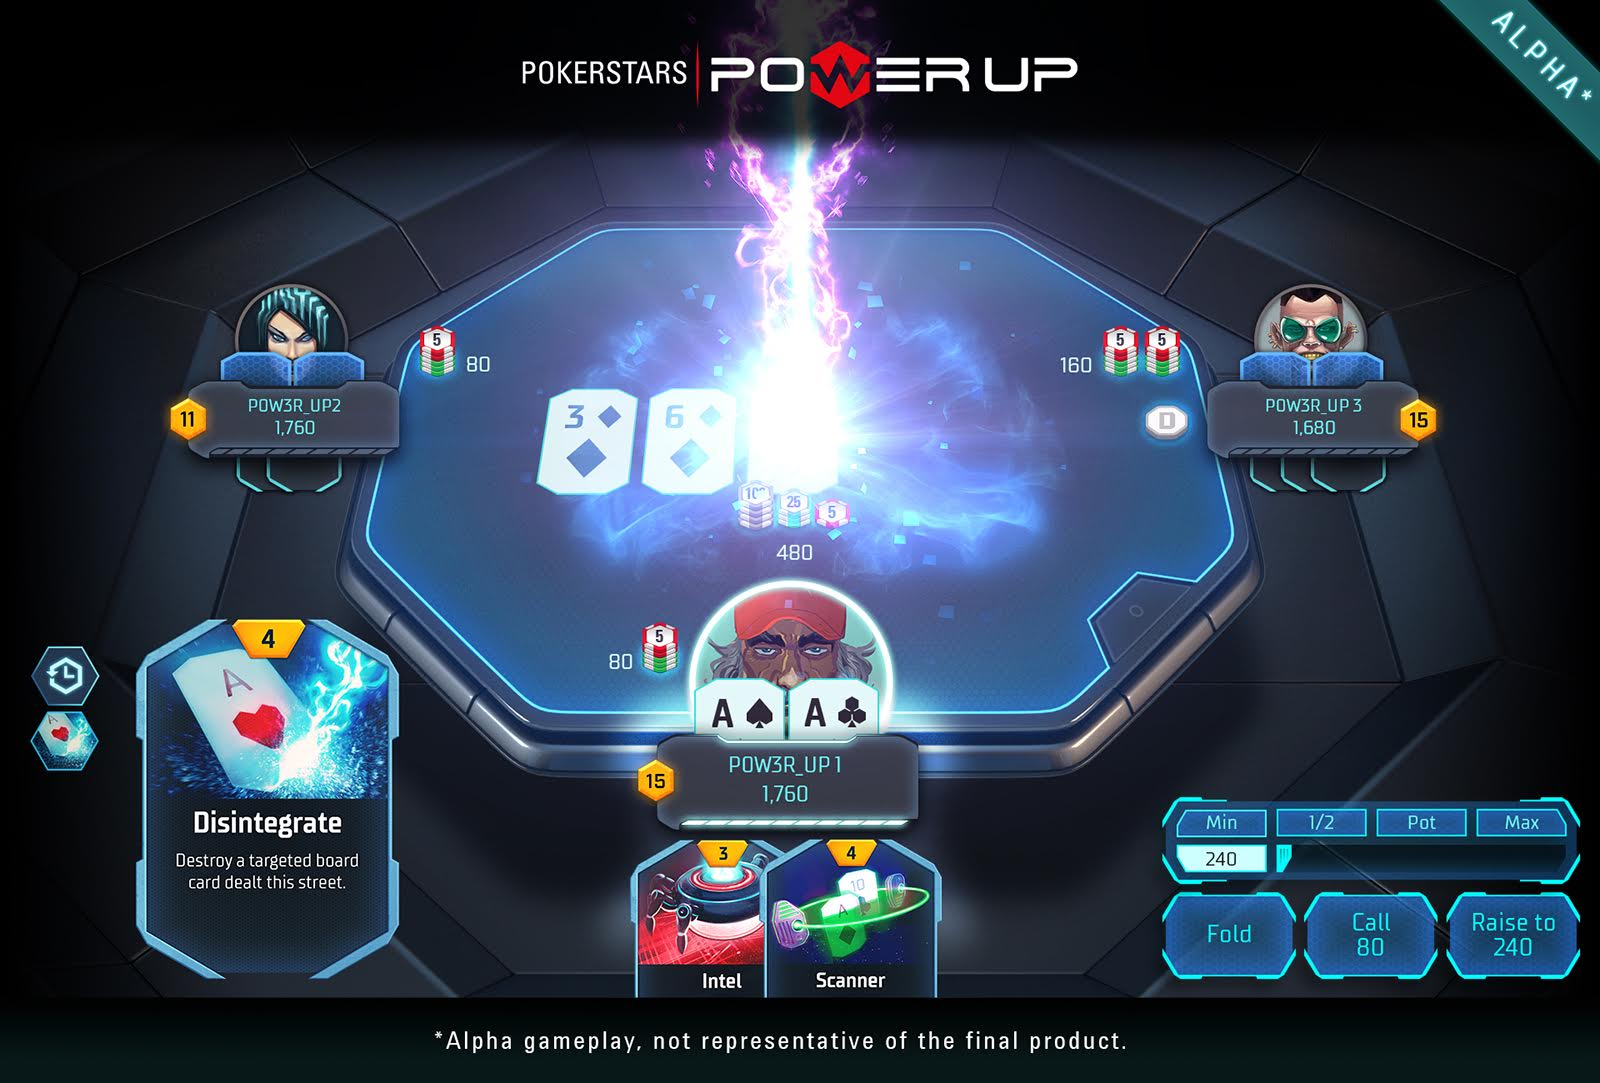 Power Up PokerStars